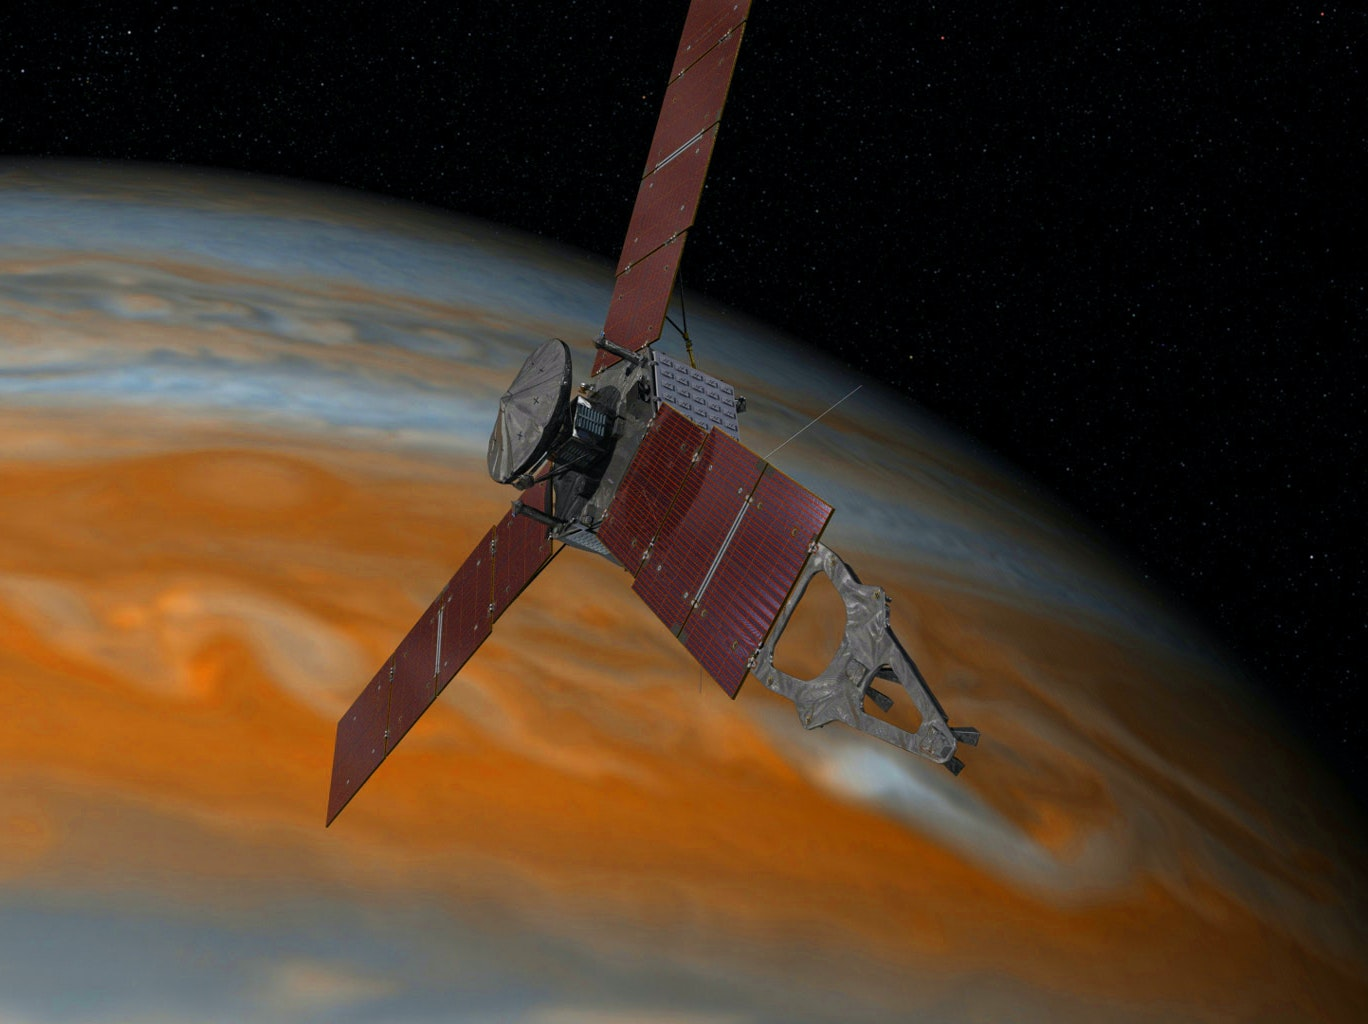 NASA's Juno Probe has exited Safe Mode